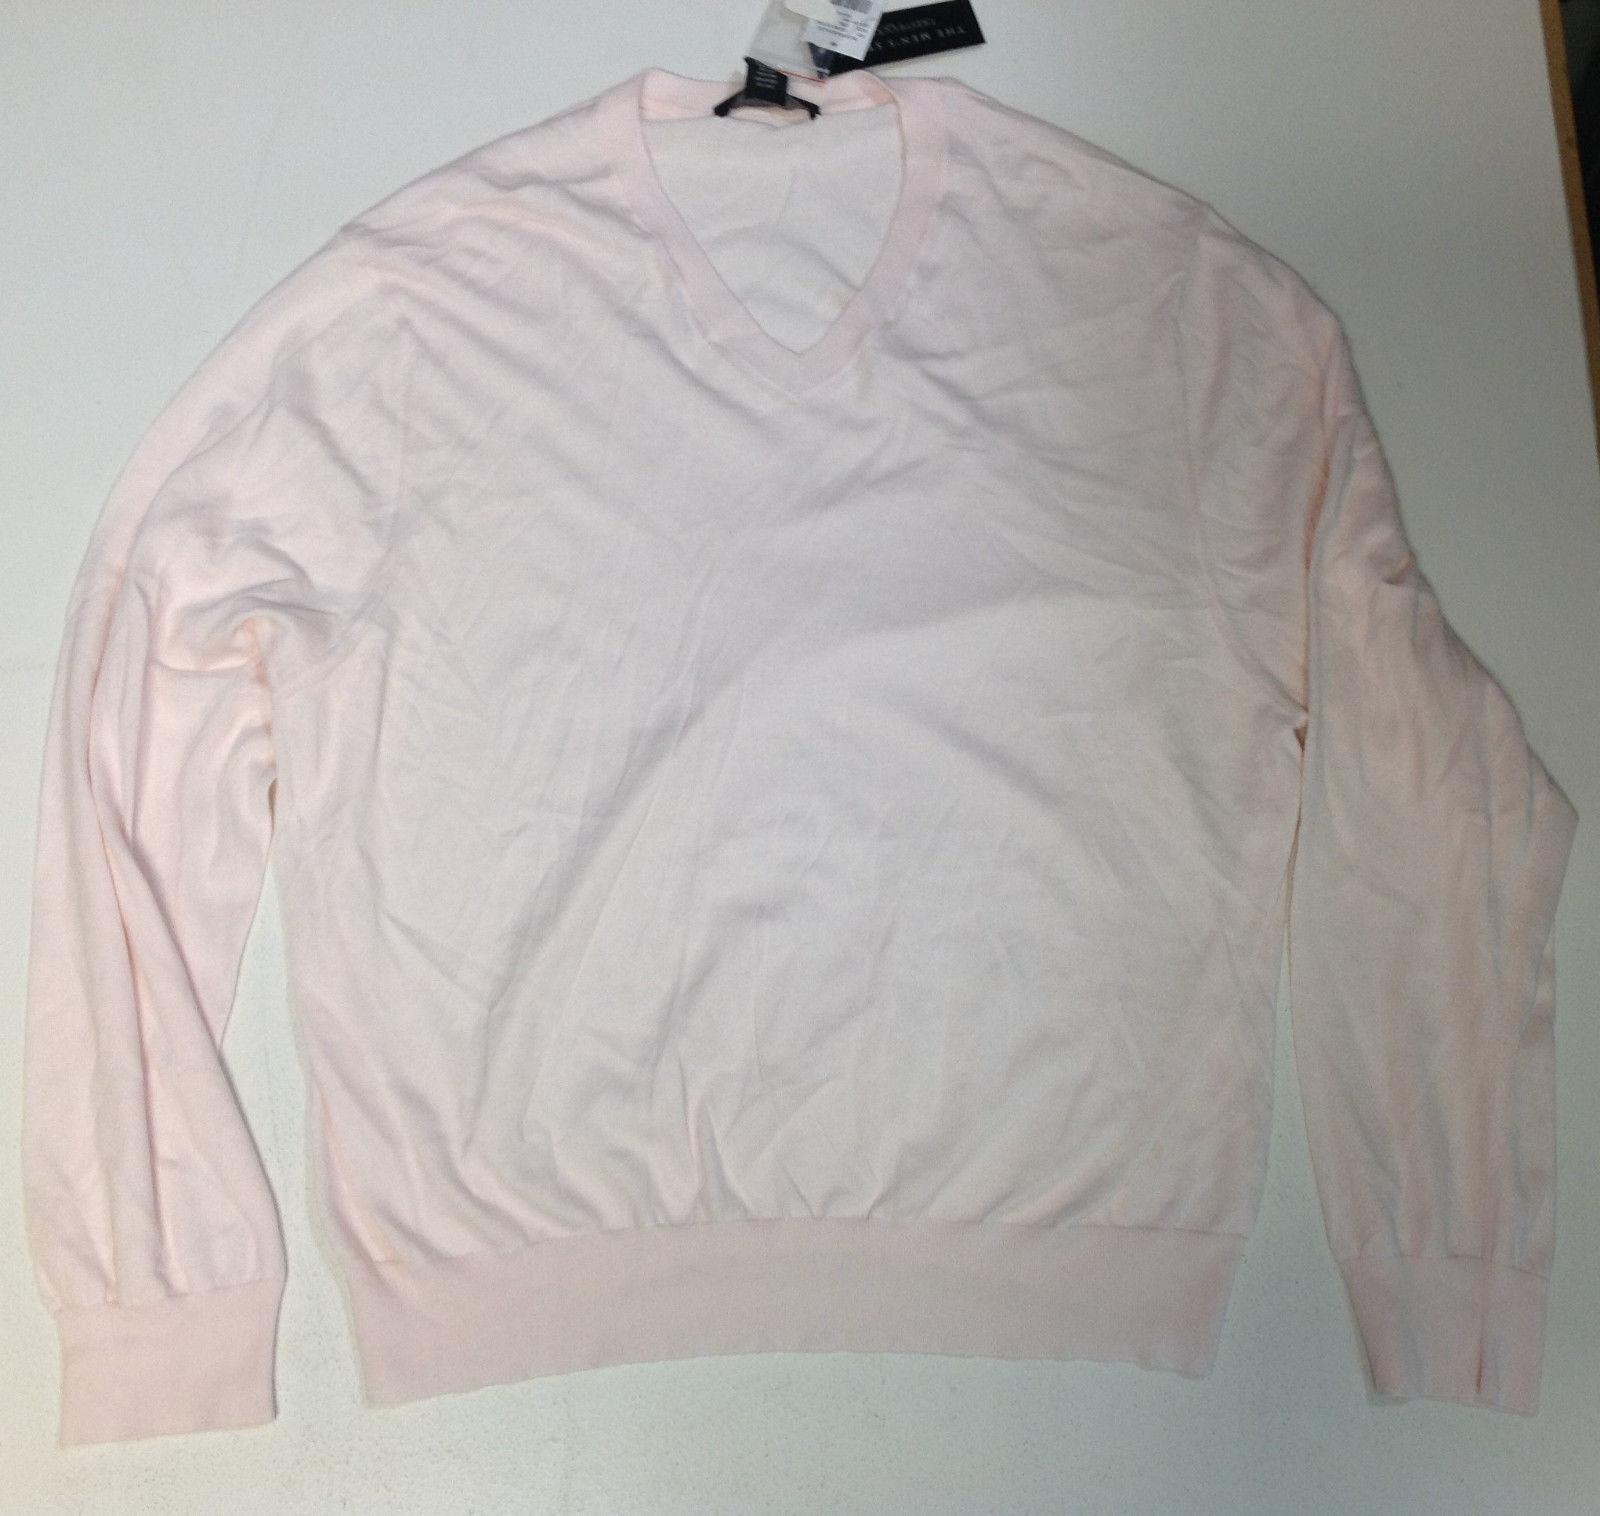 The Men's Store at Bloomingdale's V-Neck Cotton-Cashmere Sweater, Size XL, $98